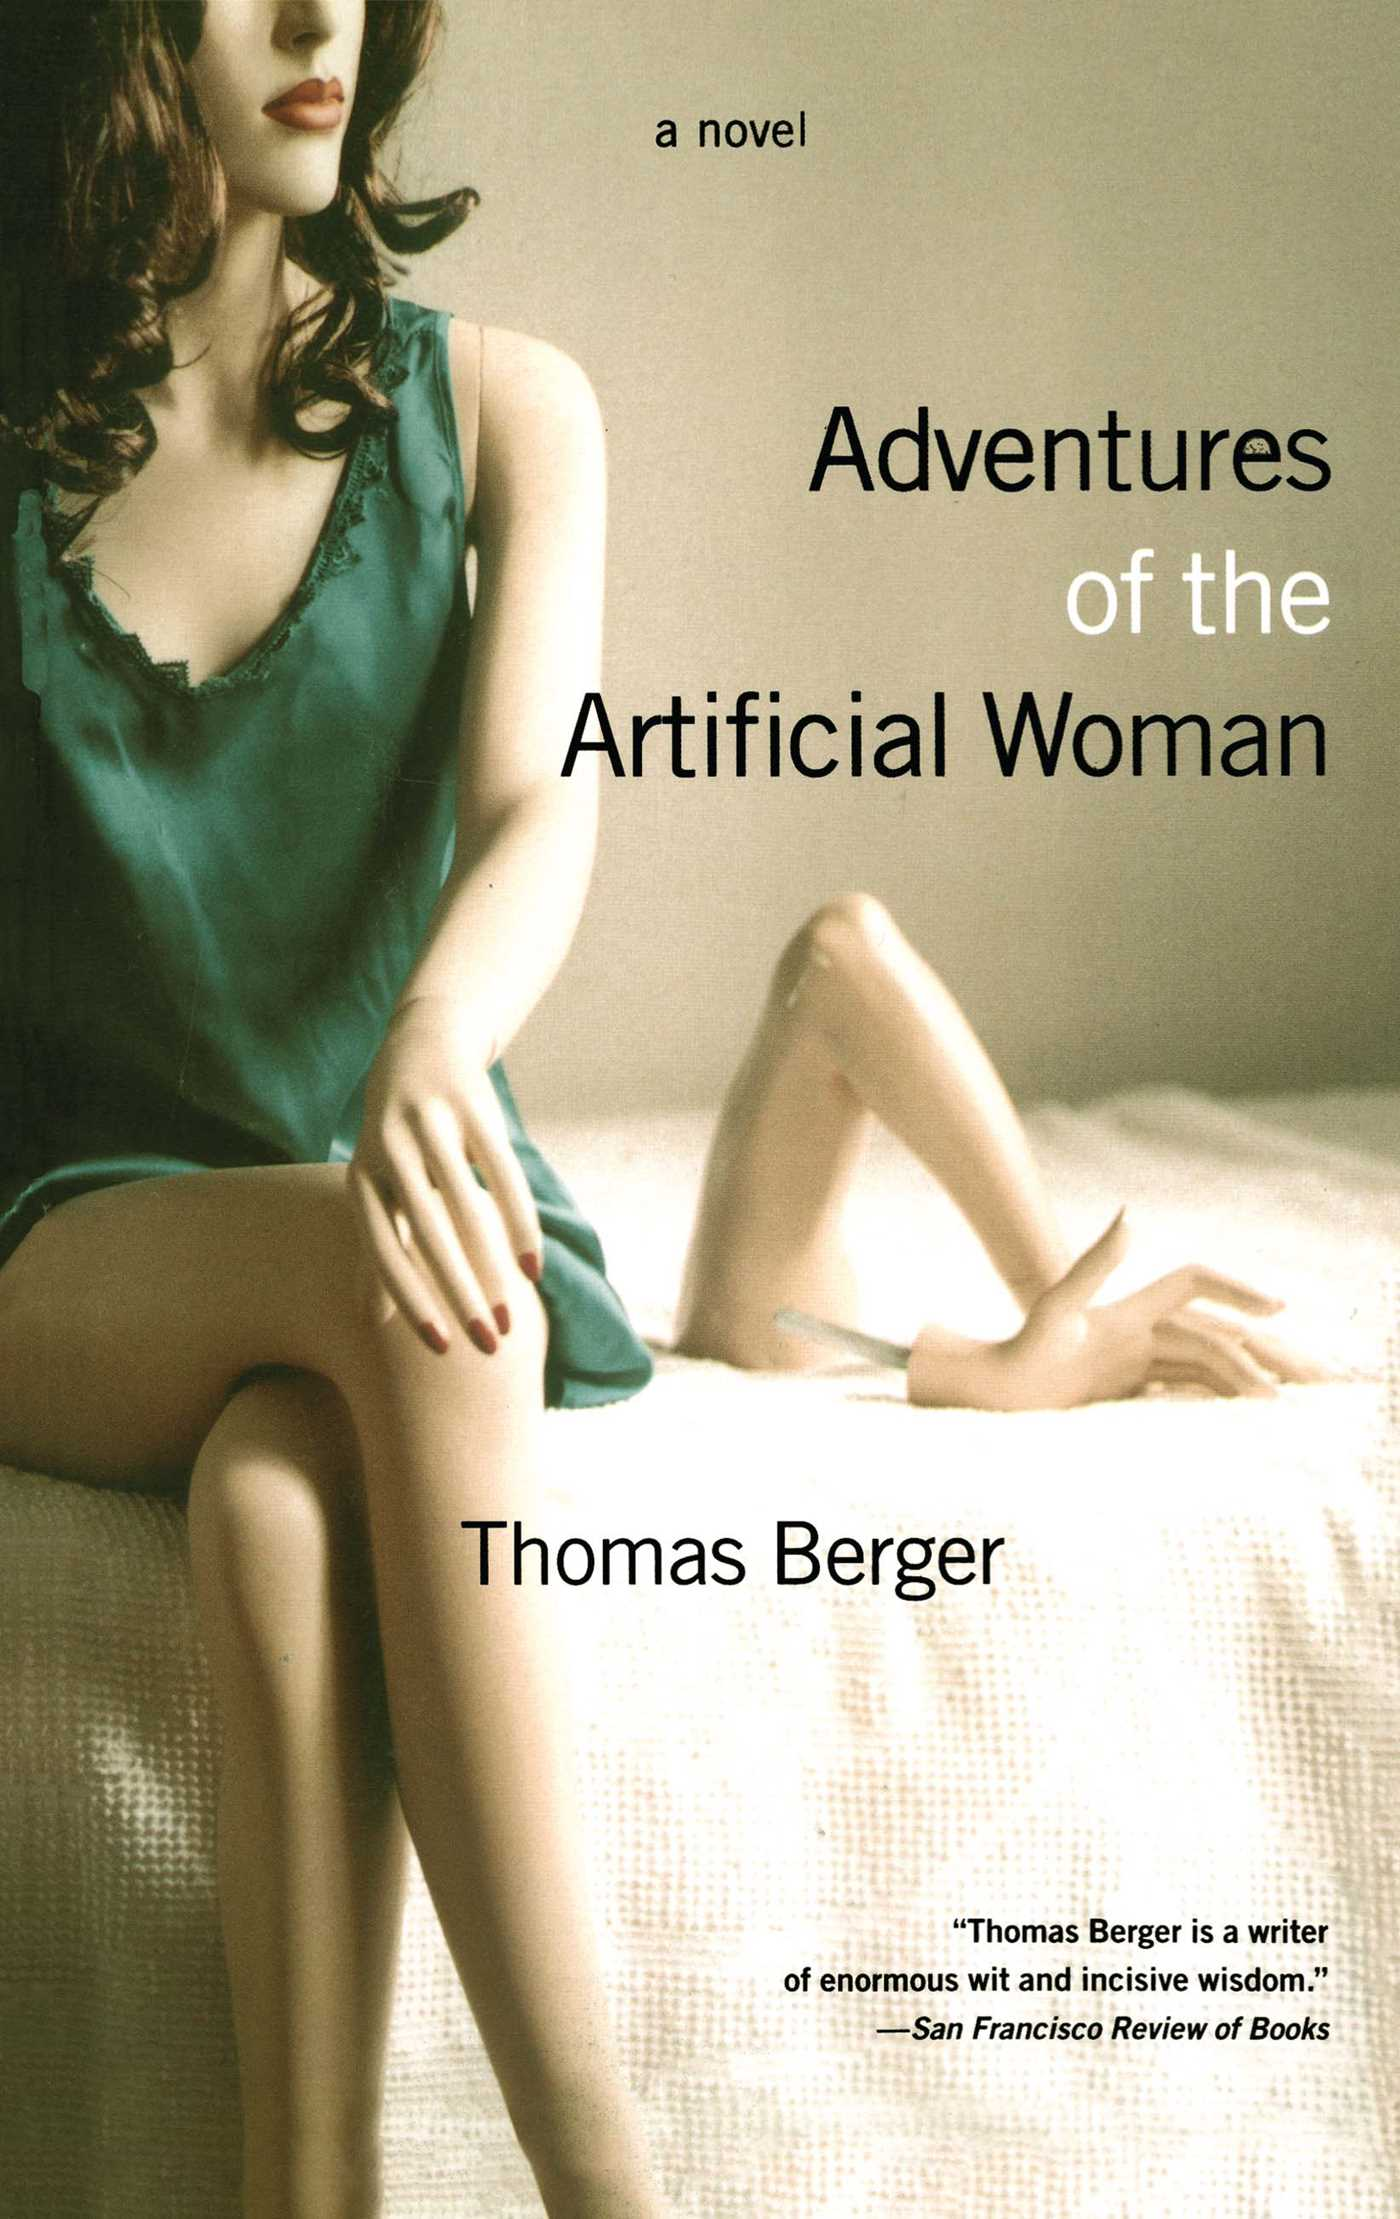 Adventures-of-the-artificial-woman-9780743257411_hr